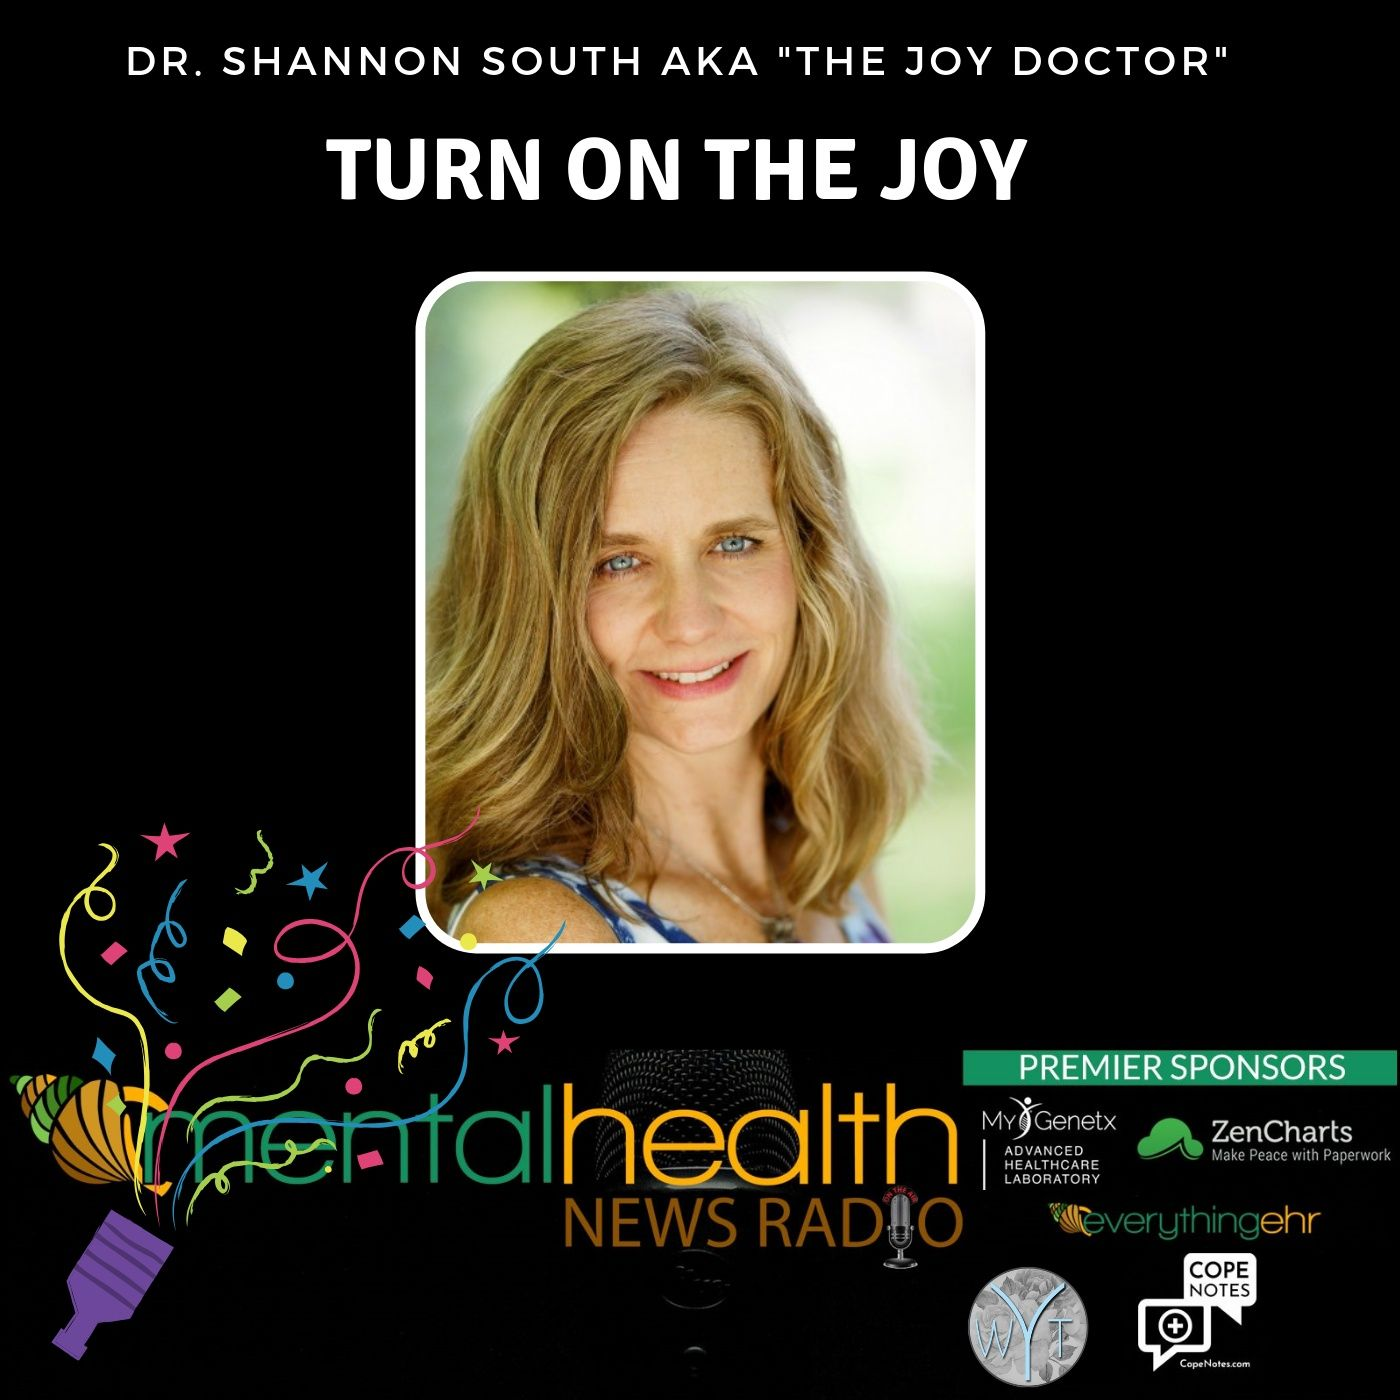 Mental Health News Radio - Turn on the Joy and Rewire Yourself for the New Year